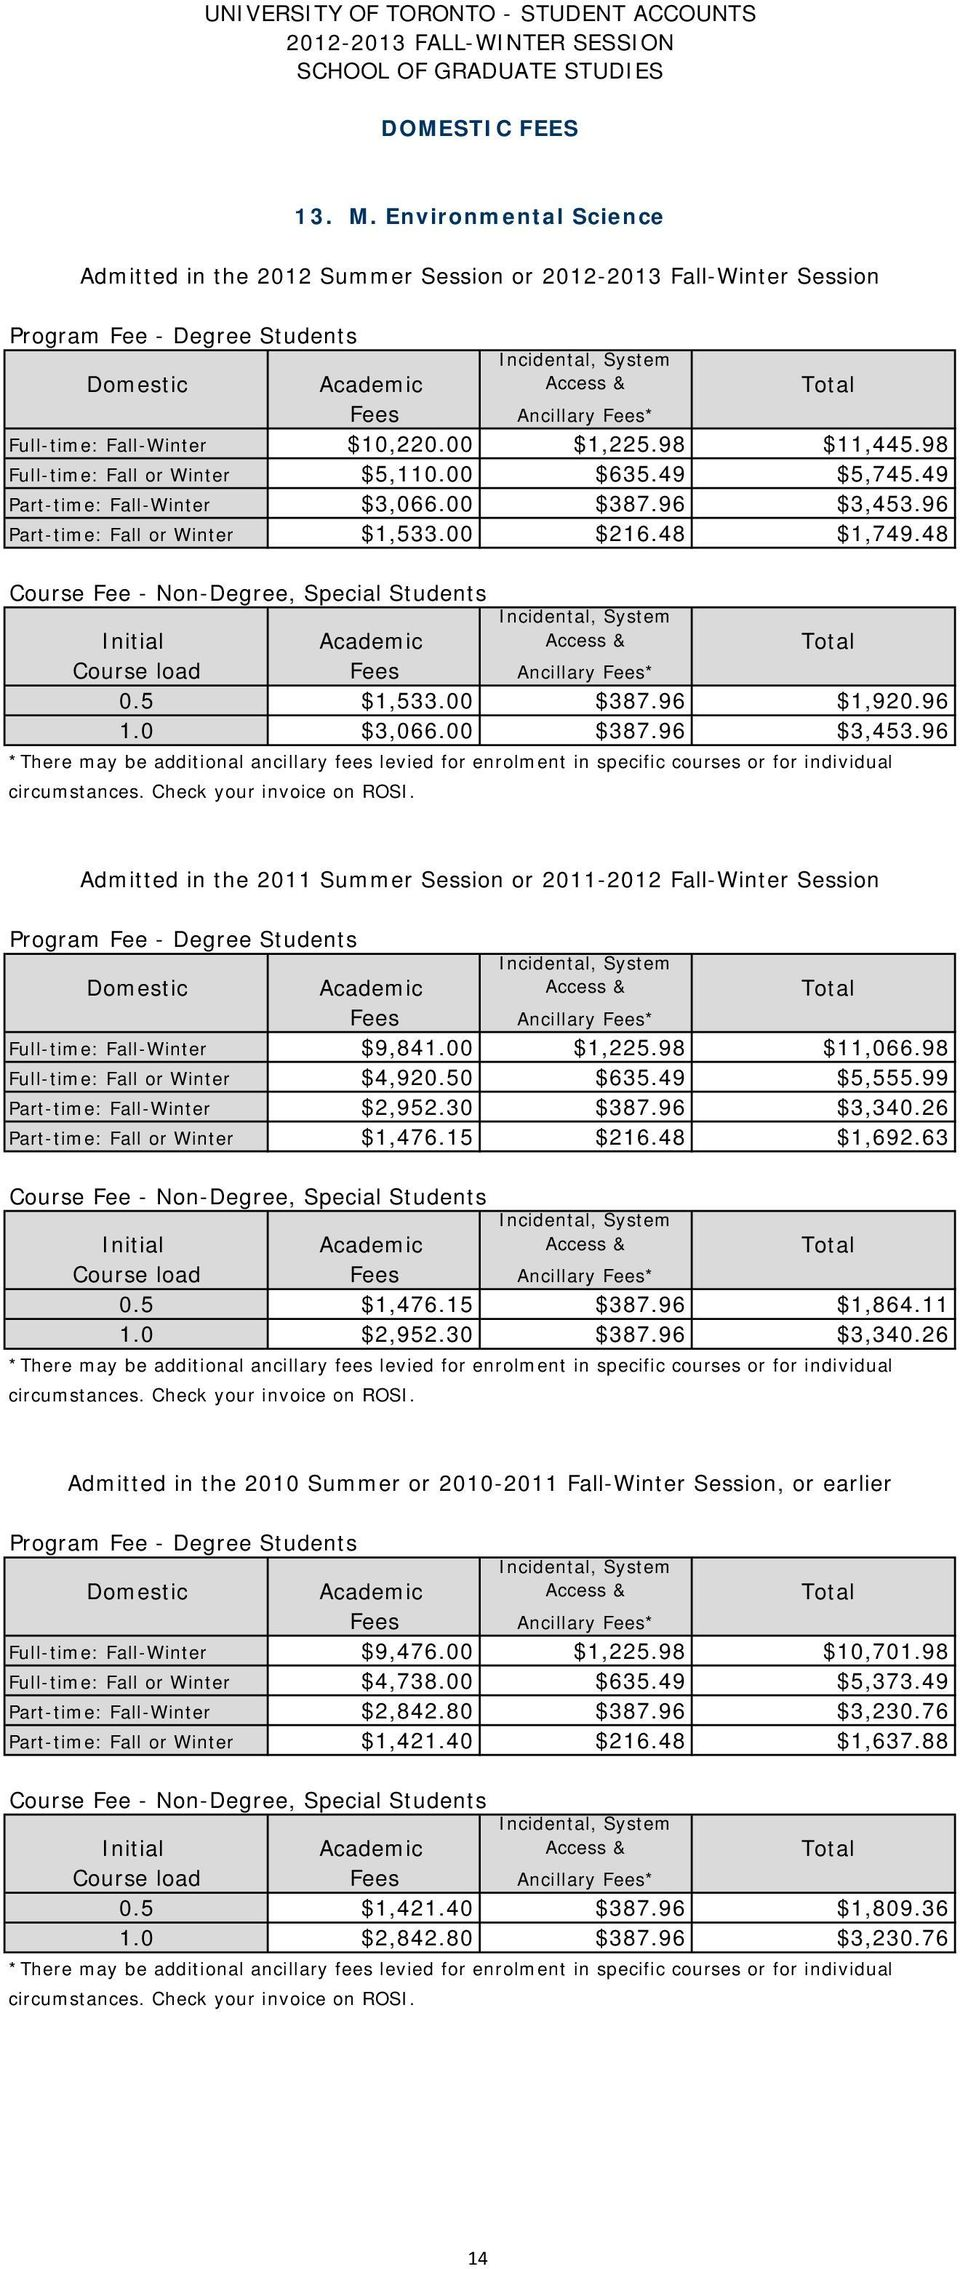 96 Admitted in the 2011 Summer Session or 2011-2012 Fall-Winter Session Full-time: Fall-Winter $9,841.00 $1,225.98 $11,066.98 Full-time: Fall or Winter $4,920.50 $635.49 $5,555.